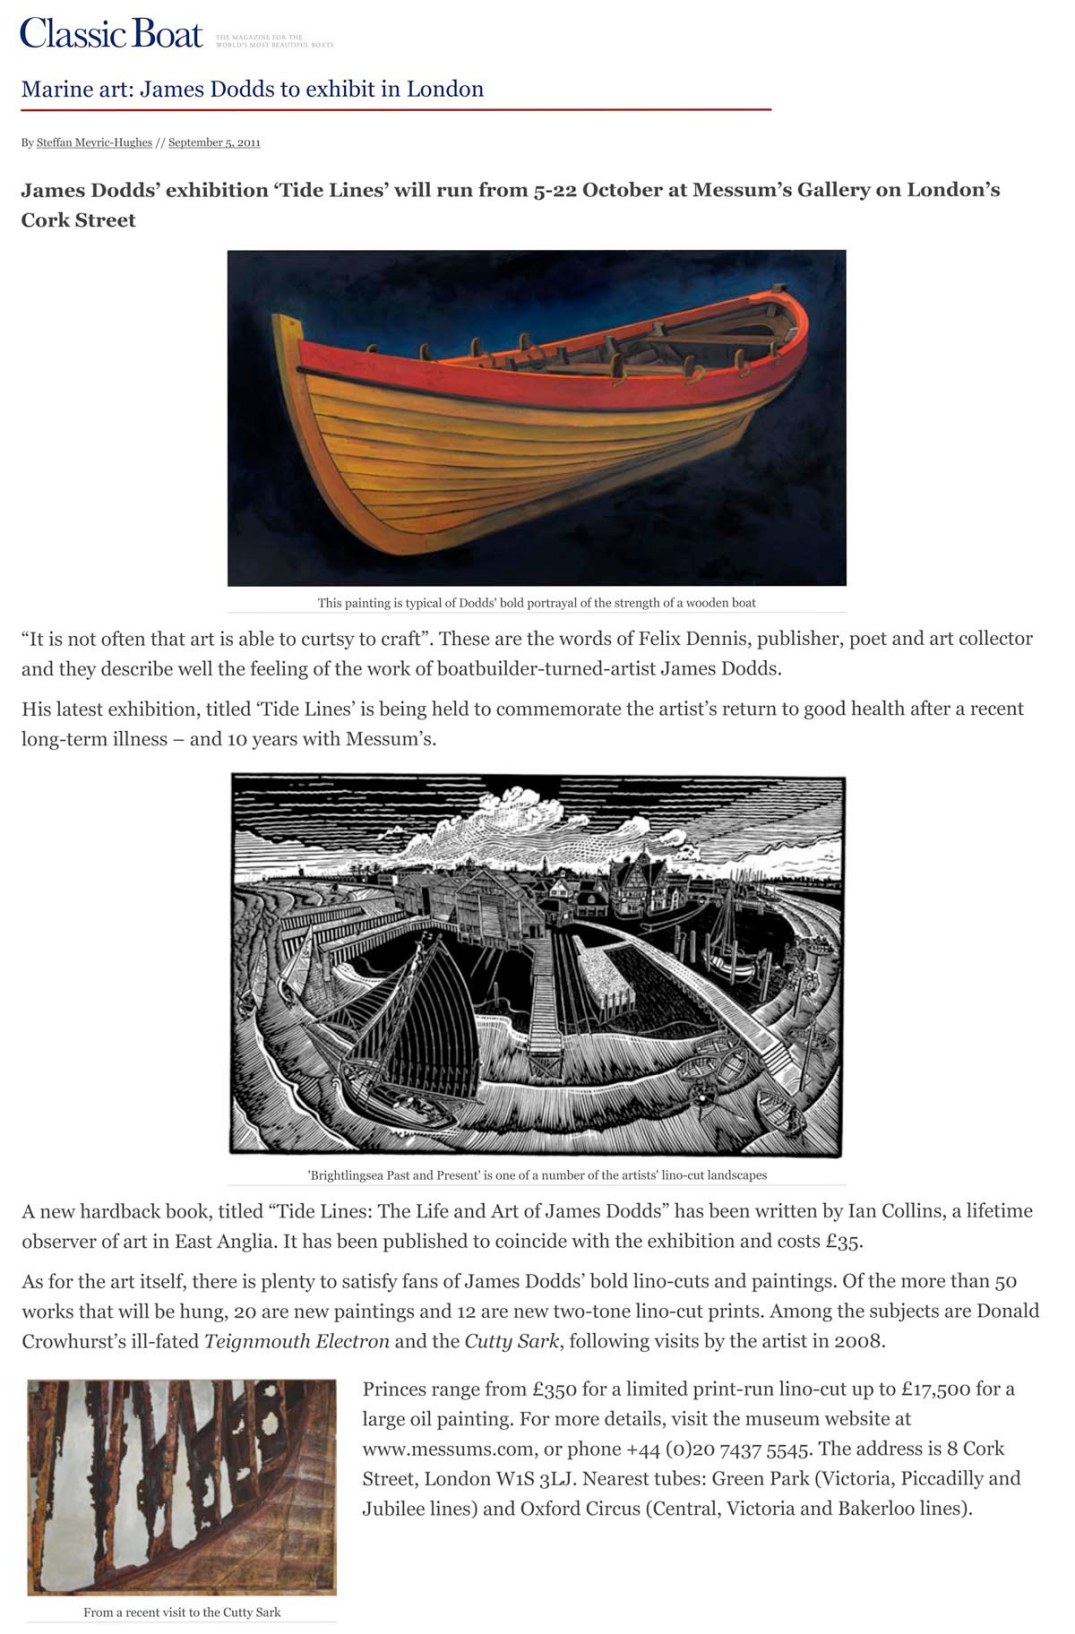 Marine art_ James Dodds to exhibit in London | Classic Boat Maga